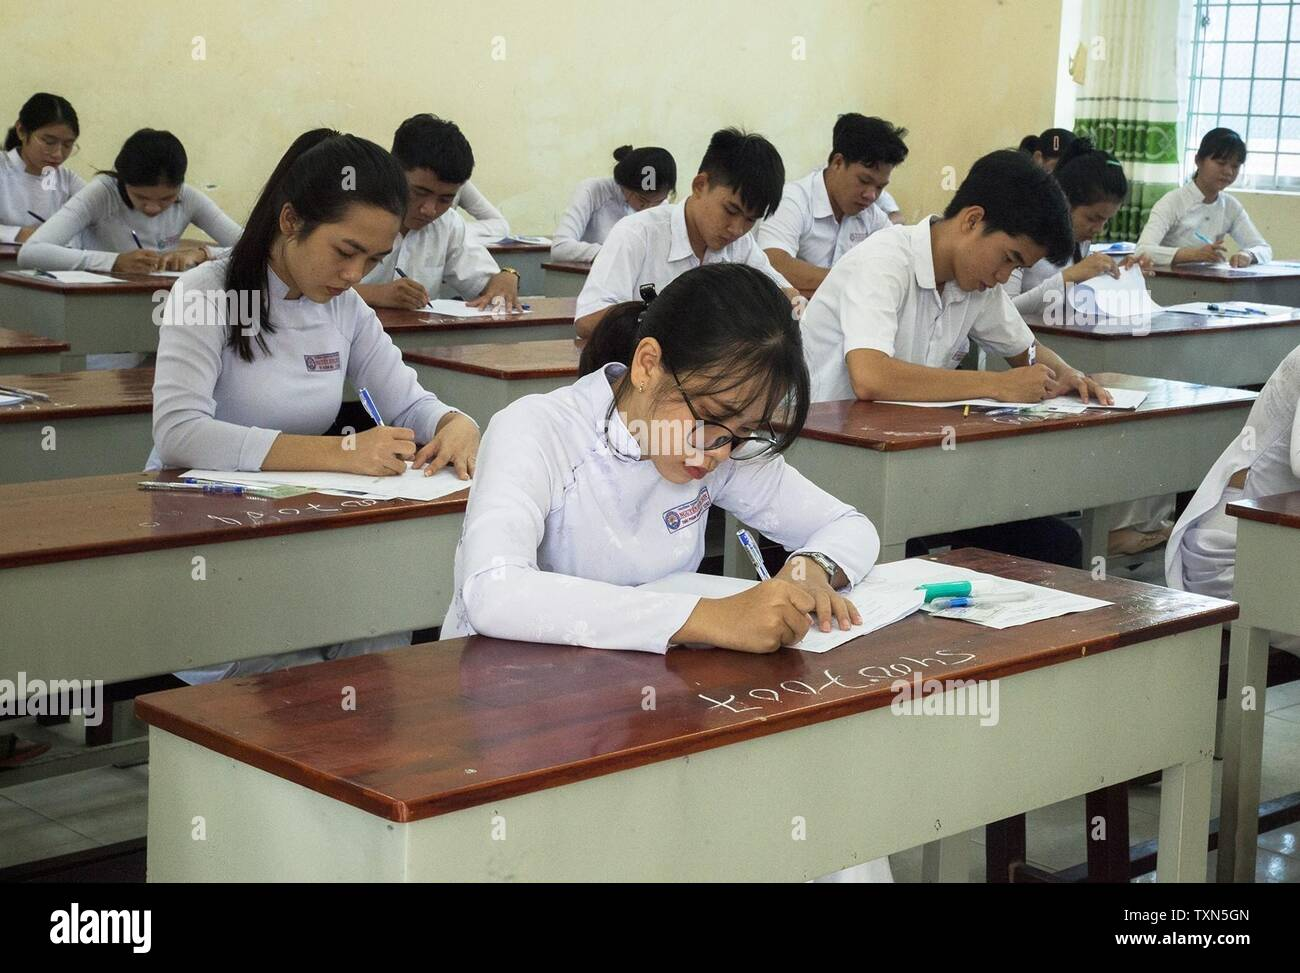 (190625) -- HANOI, June 25, 2019 (Xinhua) -- High school students take the national final exam at an examination location in Kien Giang province, Vietnam, June 25, 2019. Over 879,700 Vietnamese high school students on Tuesday started sitting for a national final exam, compared with nearly 925,800 students last year, local media reported. (Xinhua/VNA) - Stock Image